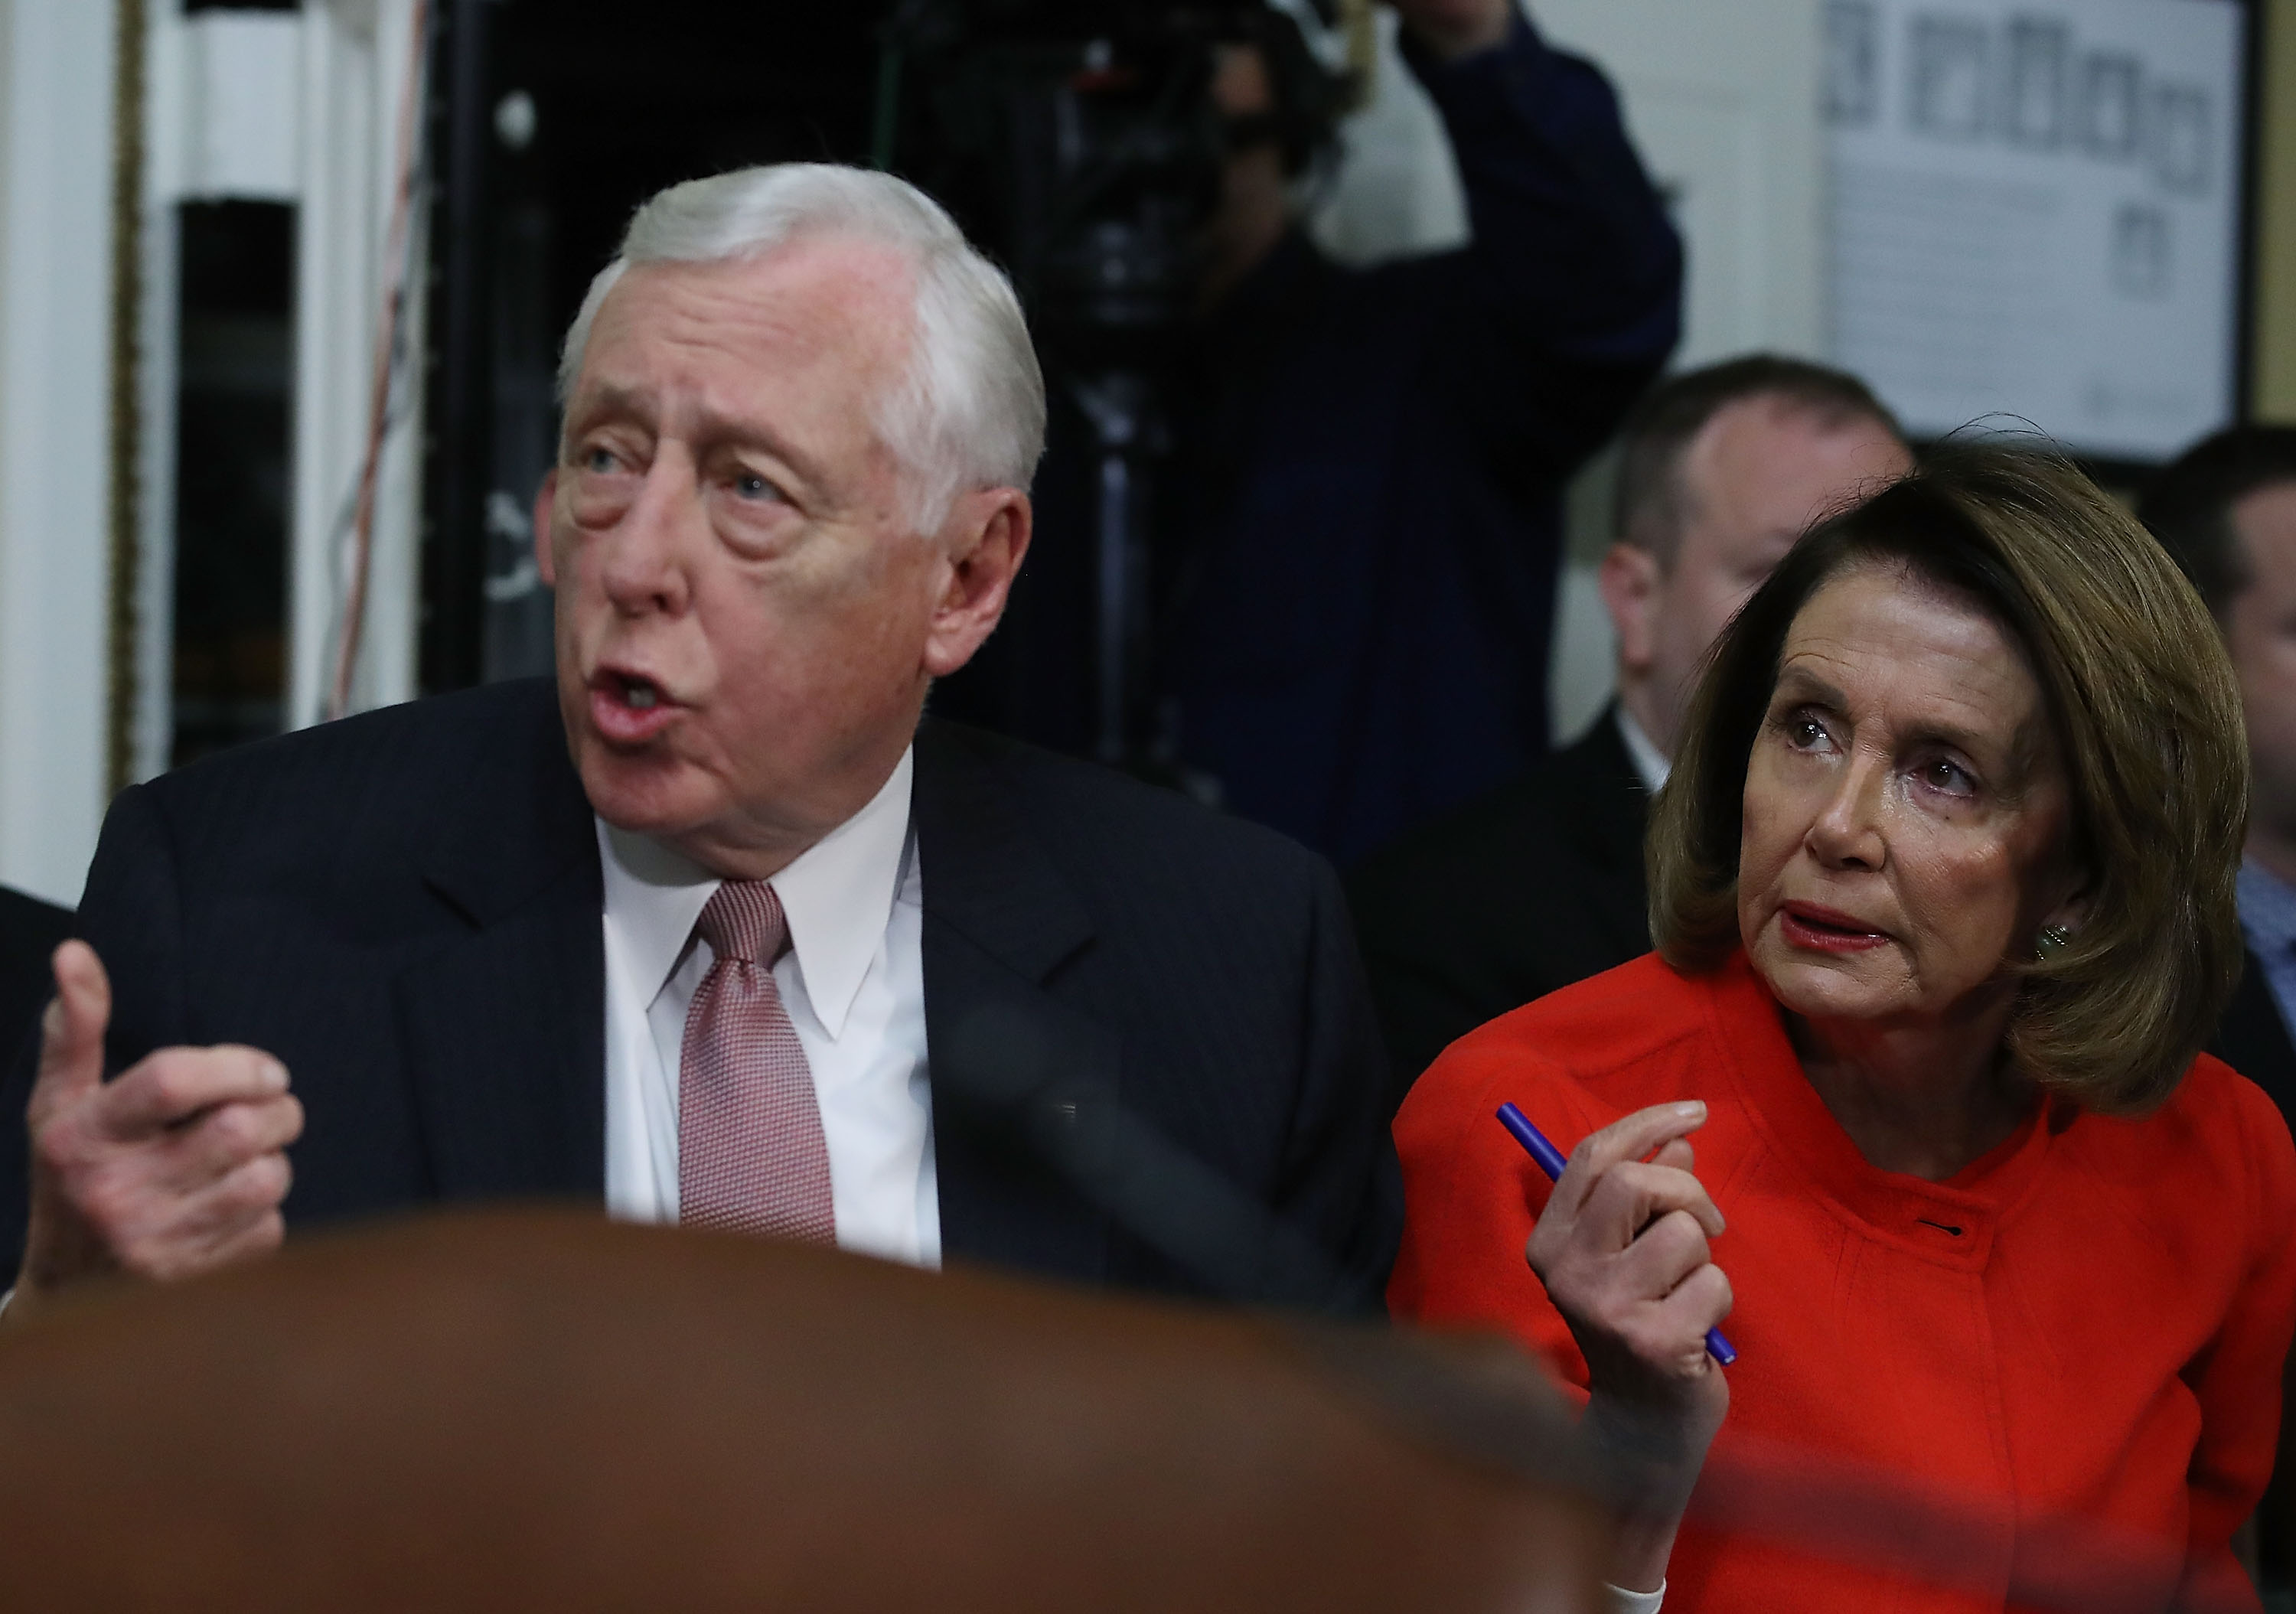 House Minority Leader Nancy Pelosi and House Minority Whip Steny Hoyer at the US Capitol in Washington, DC.